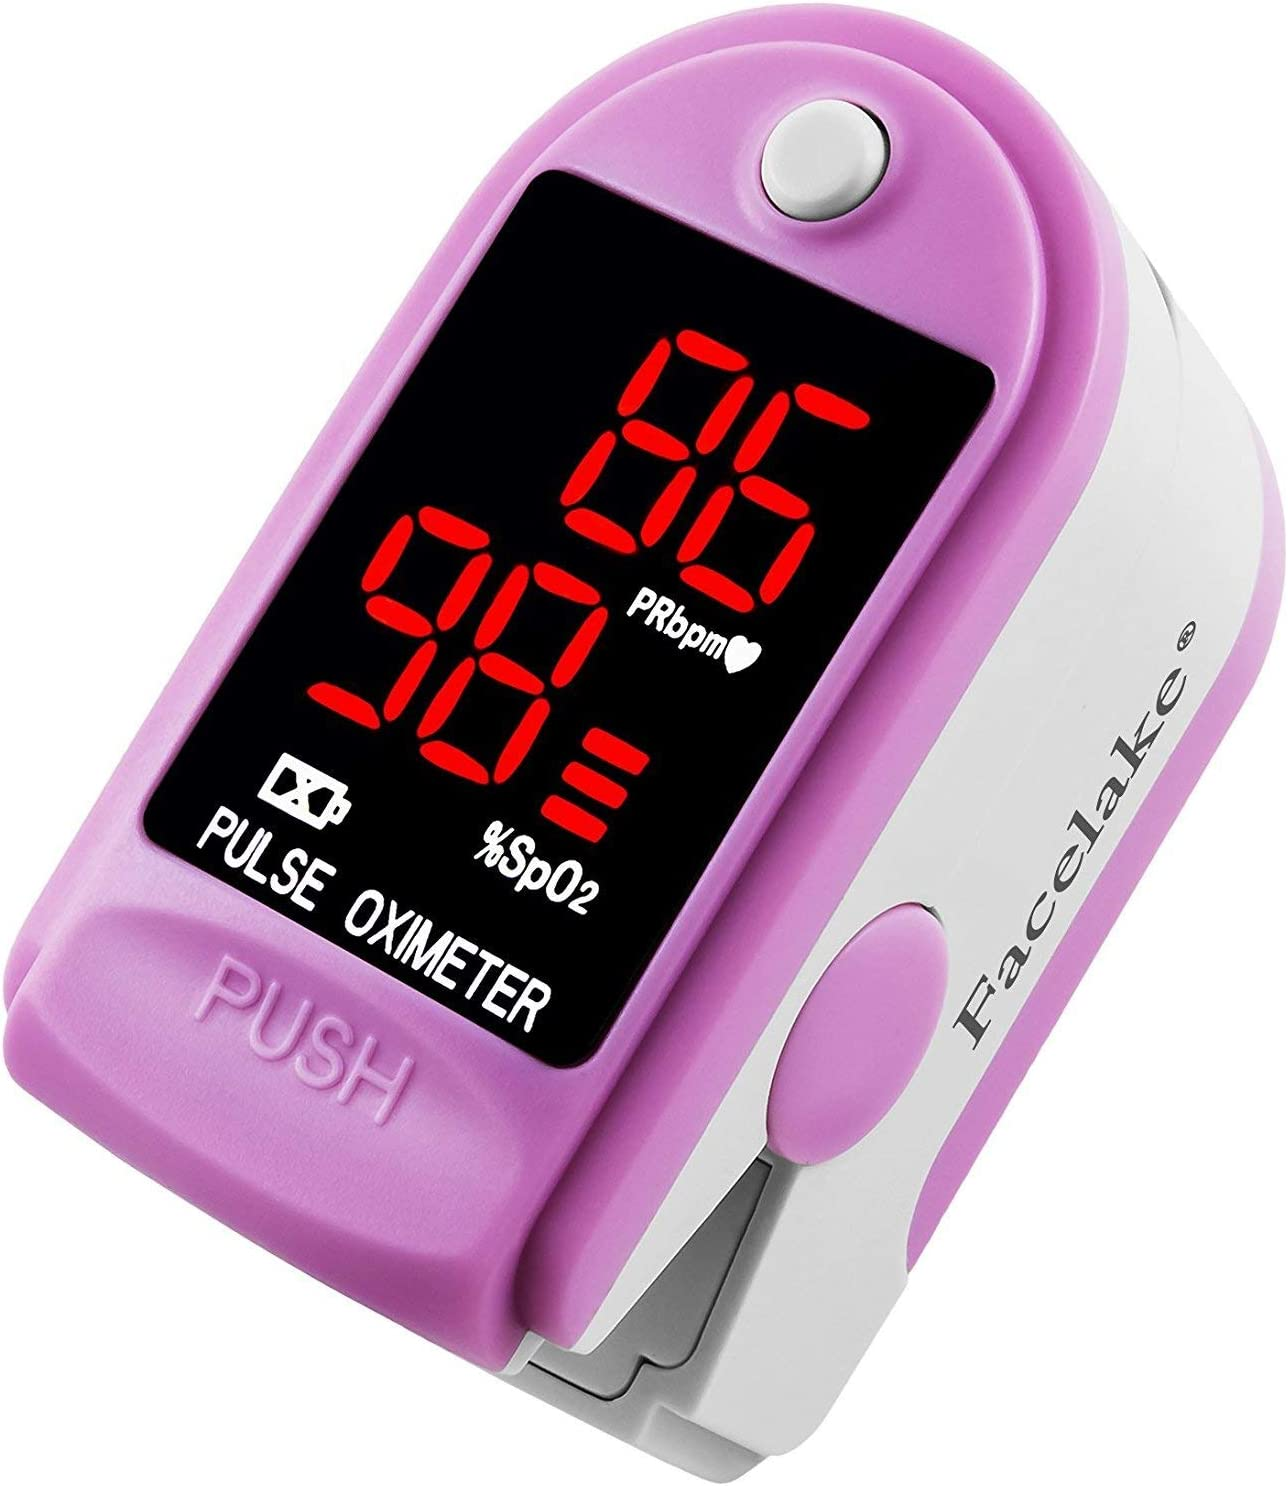 Facelake FL400 Pulse Oximeter with Carrying Case, Batteries, Neck Wrist Cord – Pink